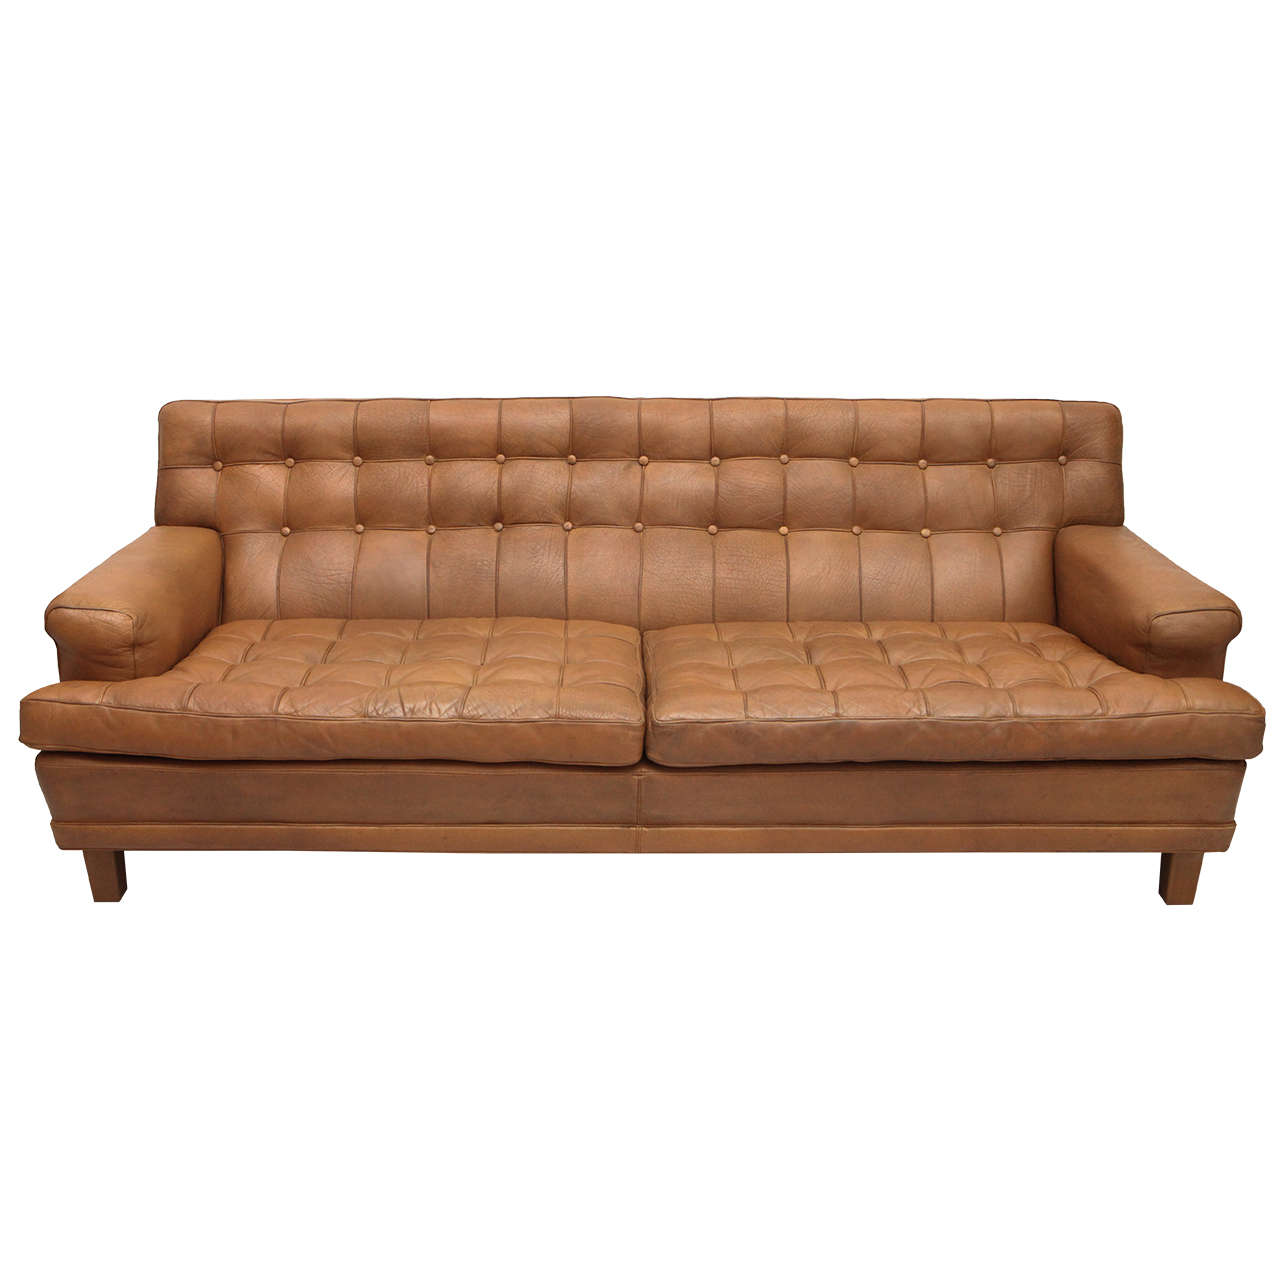 Mid Century Tan Leather Tufted Mexico Sofa By Arne Norell For